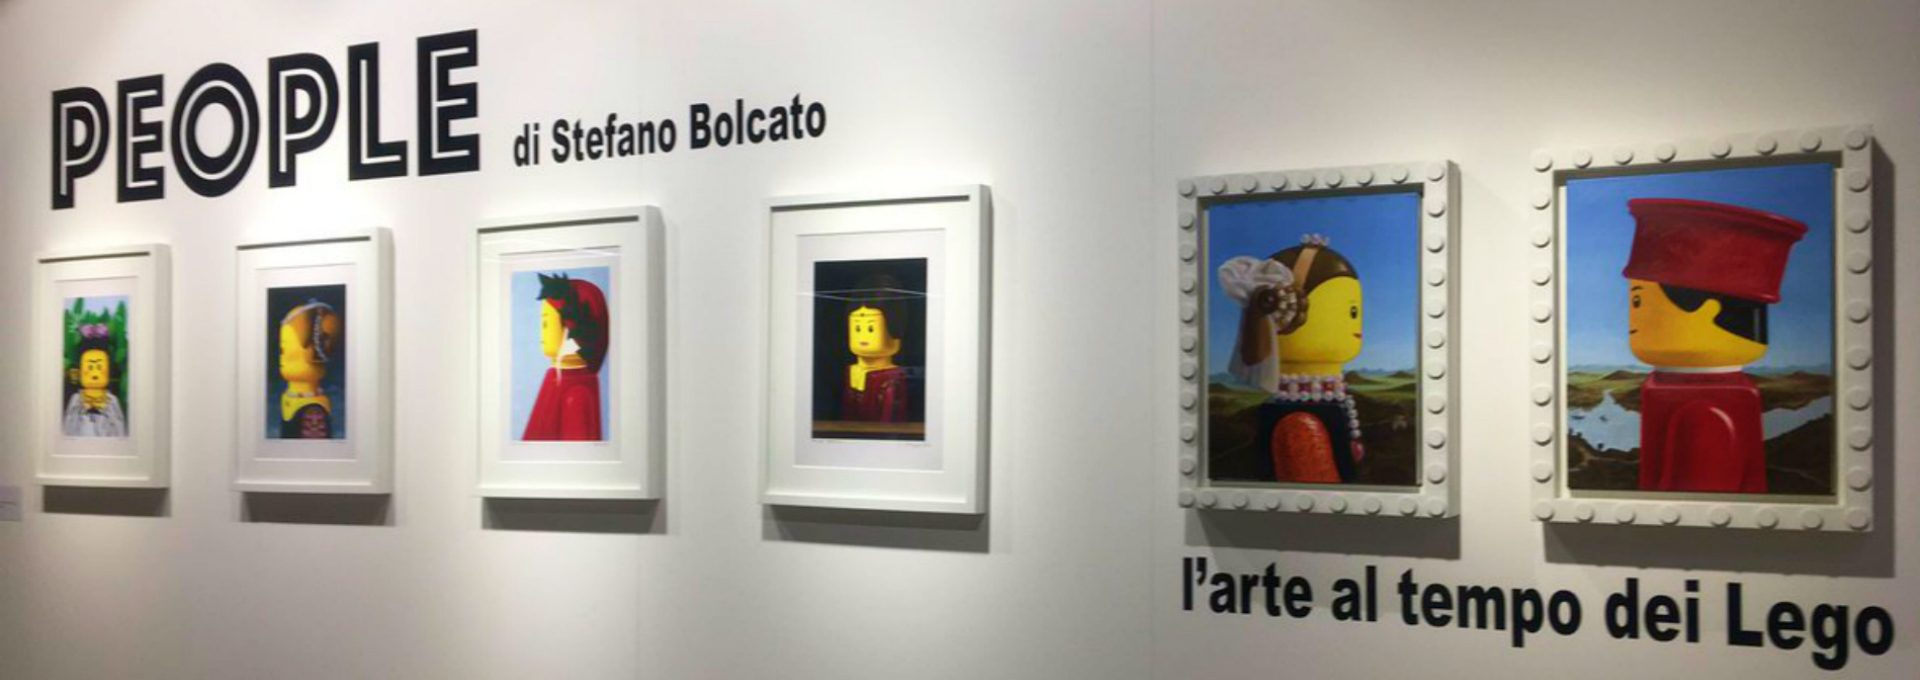 Stefano Bolcato Turns World's Famous Paintings to LEGO Art Inspired - Contemporary Art ➤ Discover the season's newest design news and inspiration ideas. Visit Daily Design News and subscribe our newsletter! #dailydesignnews #LEGOArt #ContemporaryArt #FamousPaintings #StefanoBolcato